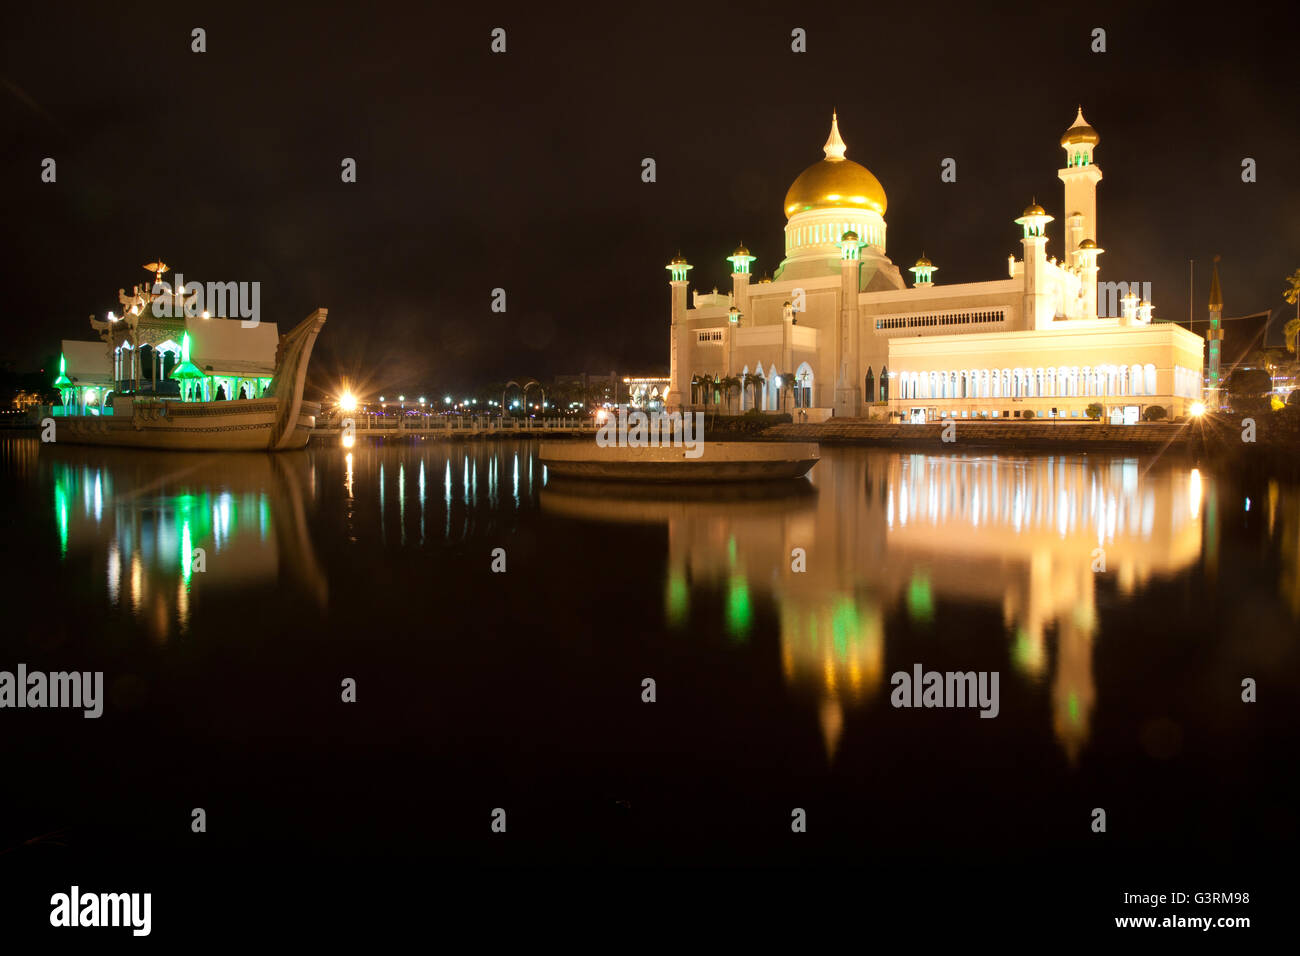 Beautiful Mosque at night - Stock Image